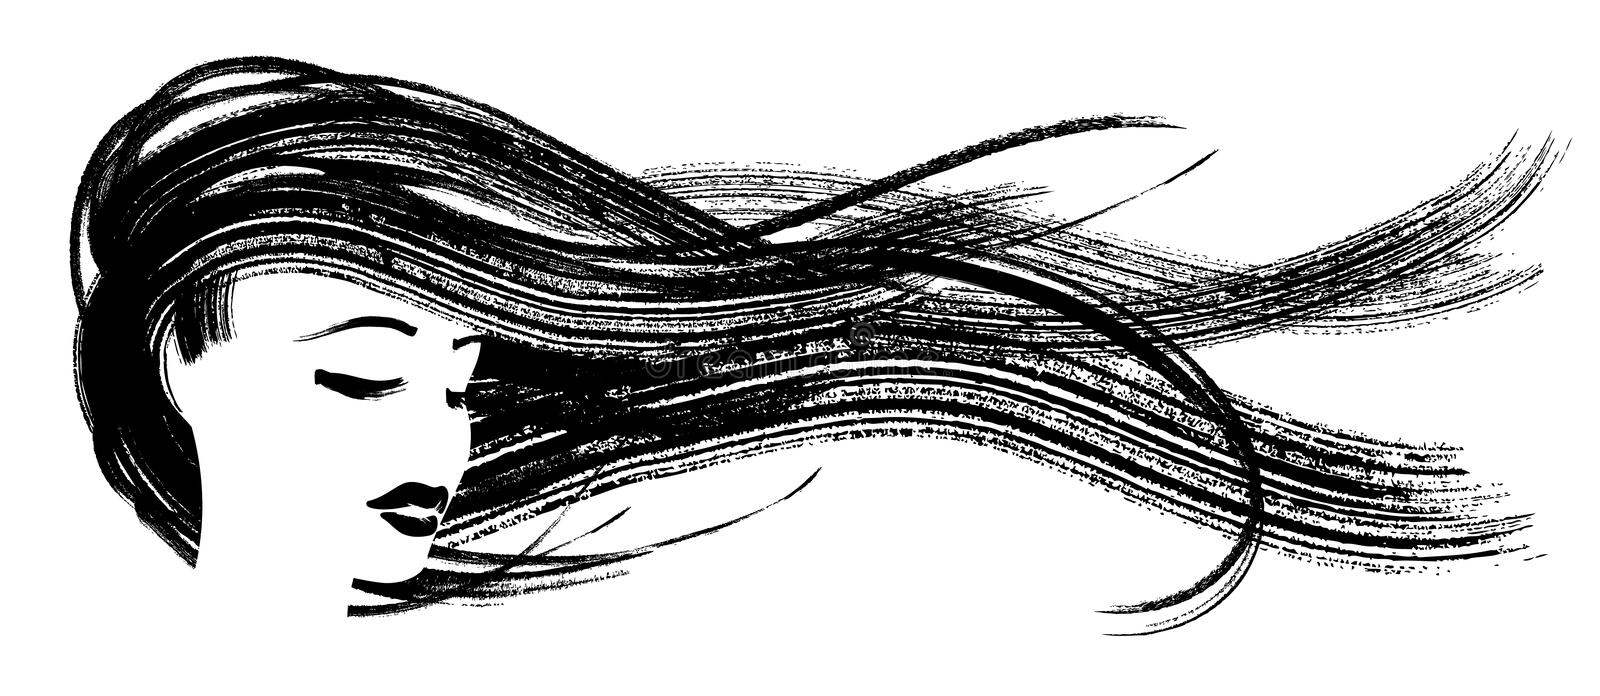 Asian girl with flying hair. Ink sketch of woman head